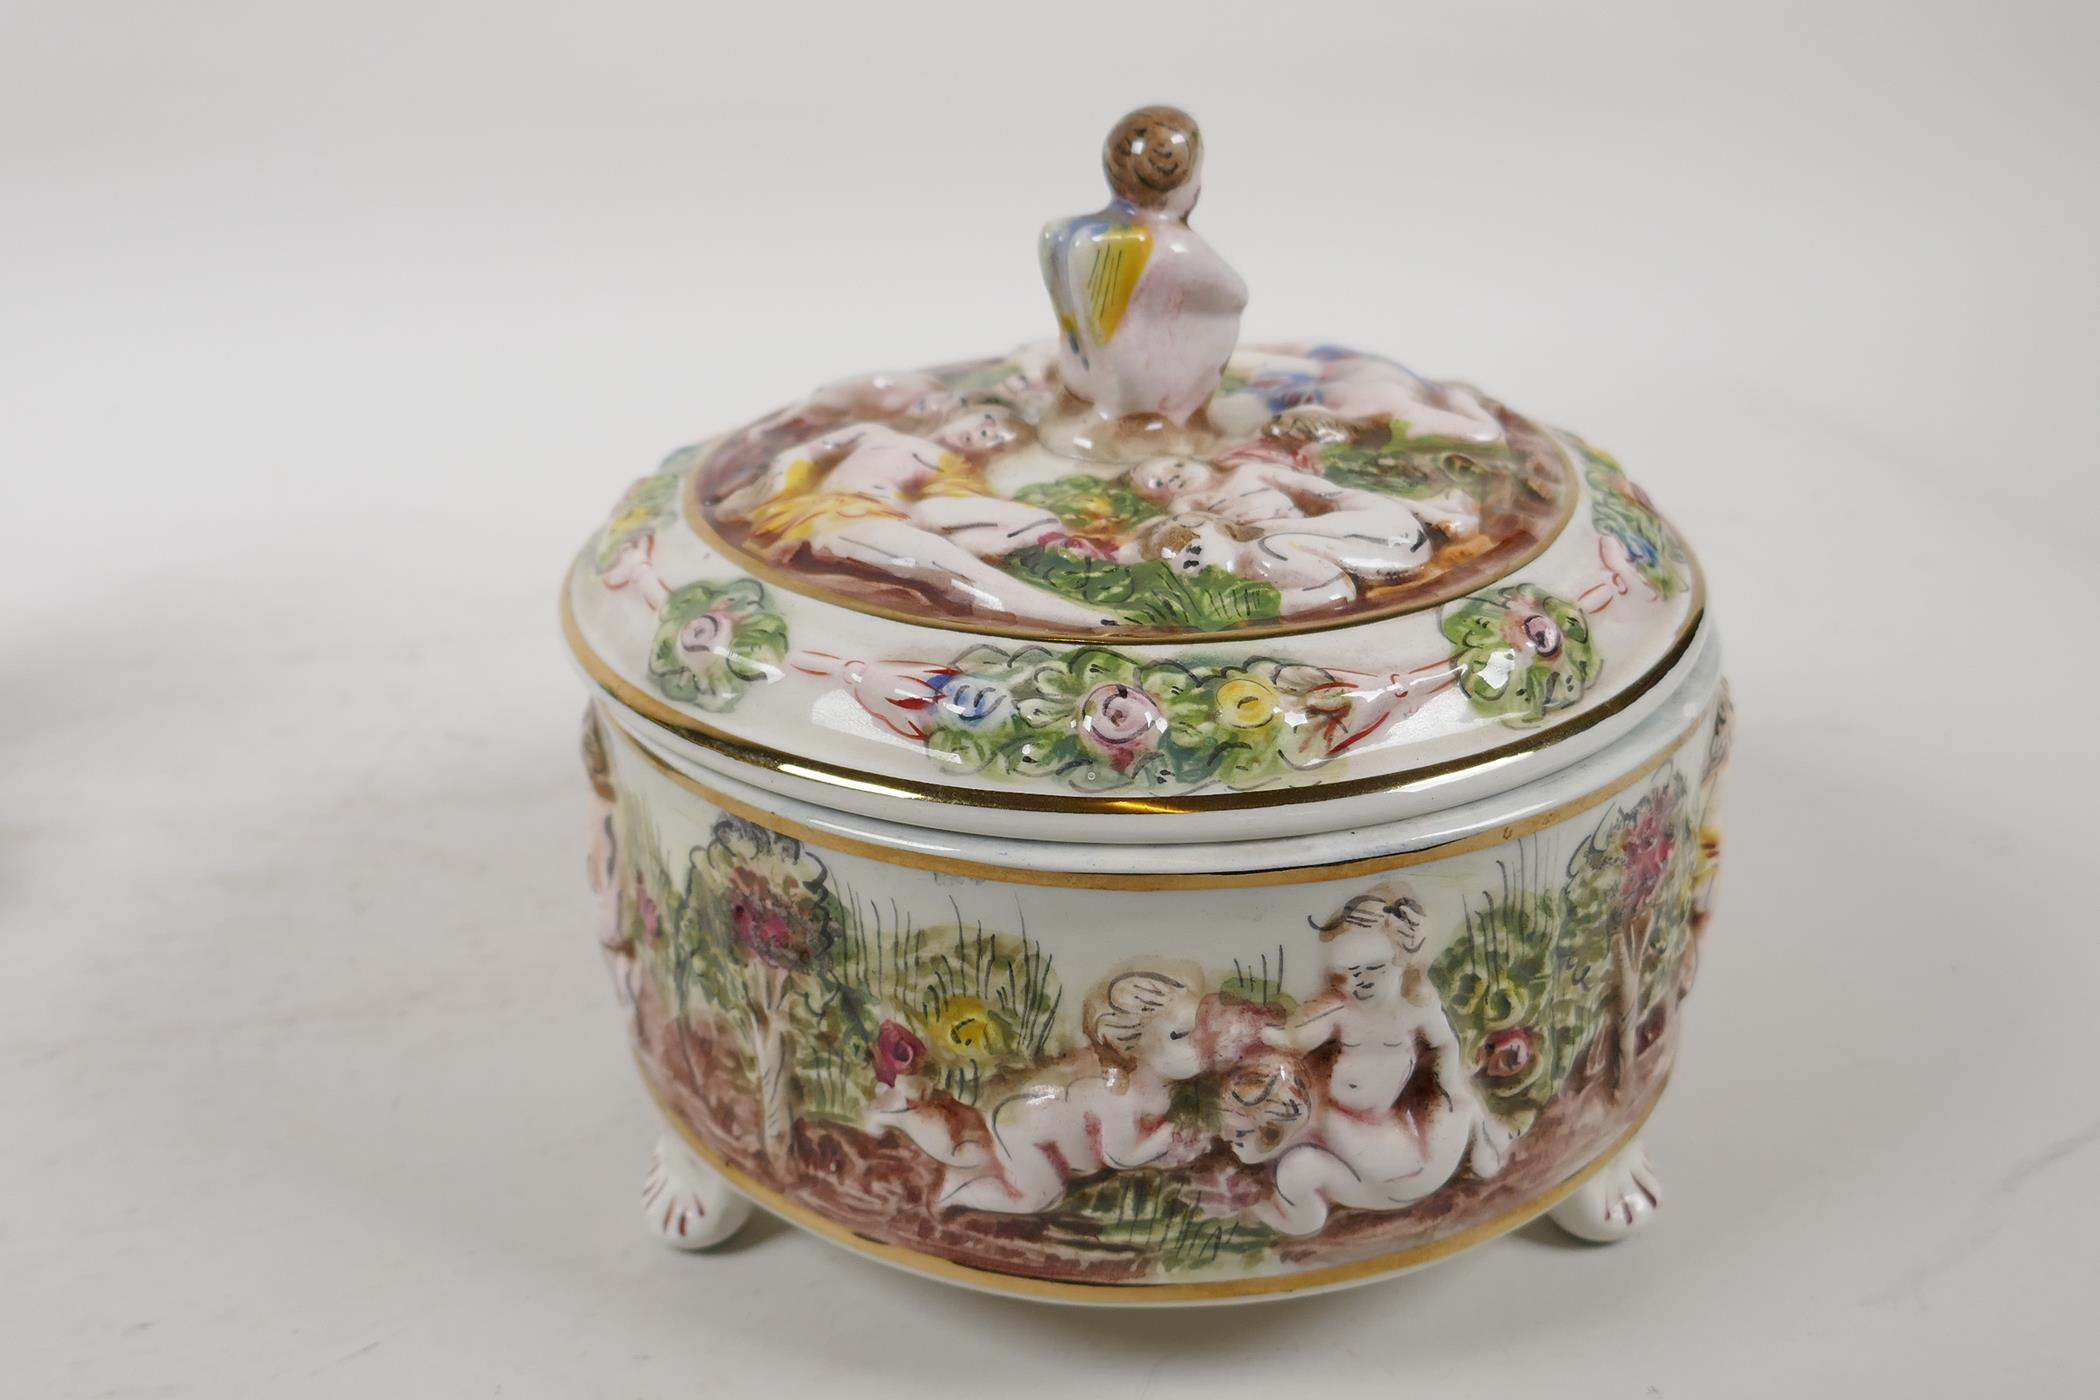 """A C19th continental porcelain inkwell modelled as two children on a seesaw, 6"""" high, and a - Image 4 of 6"""